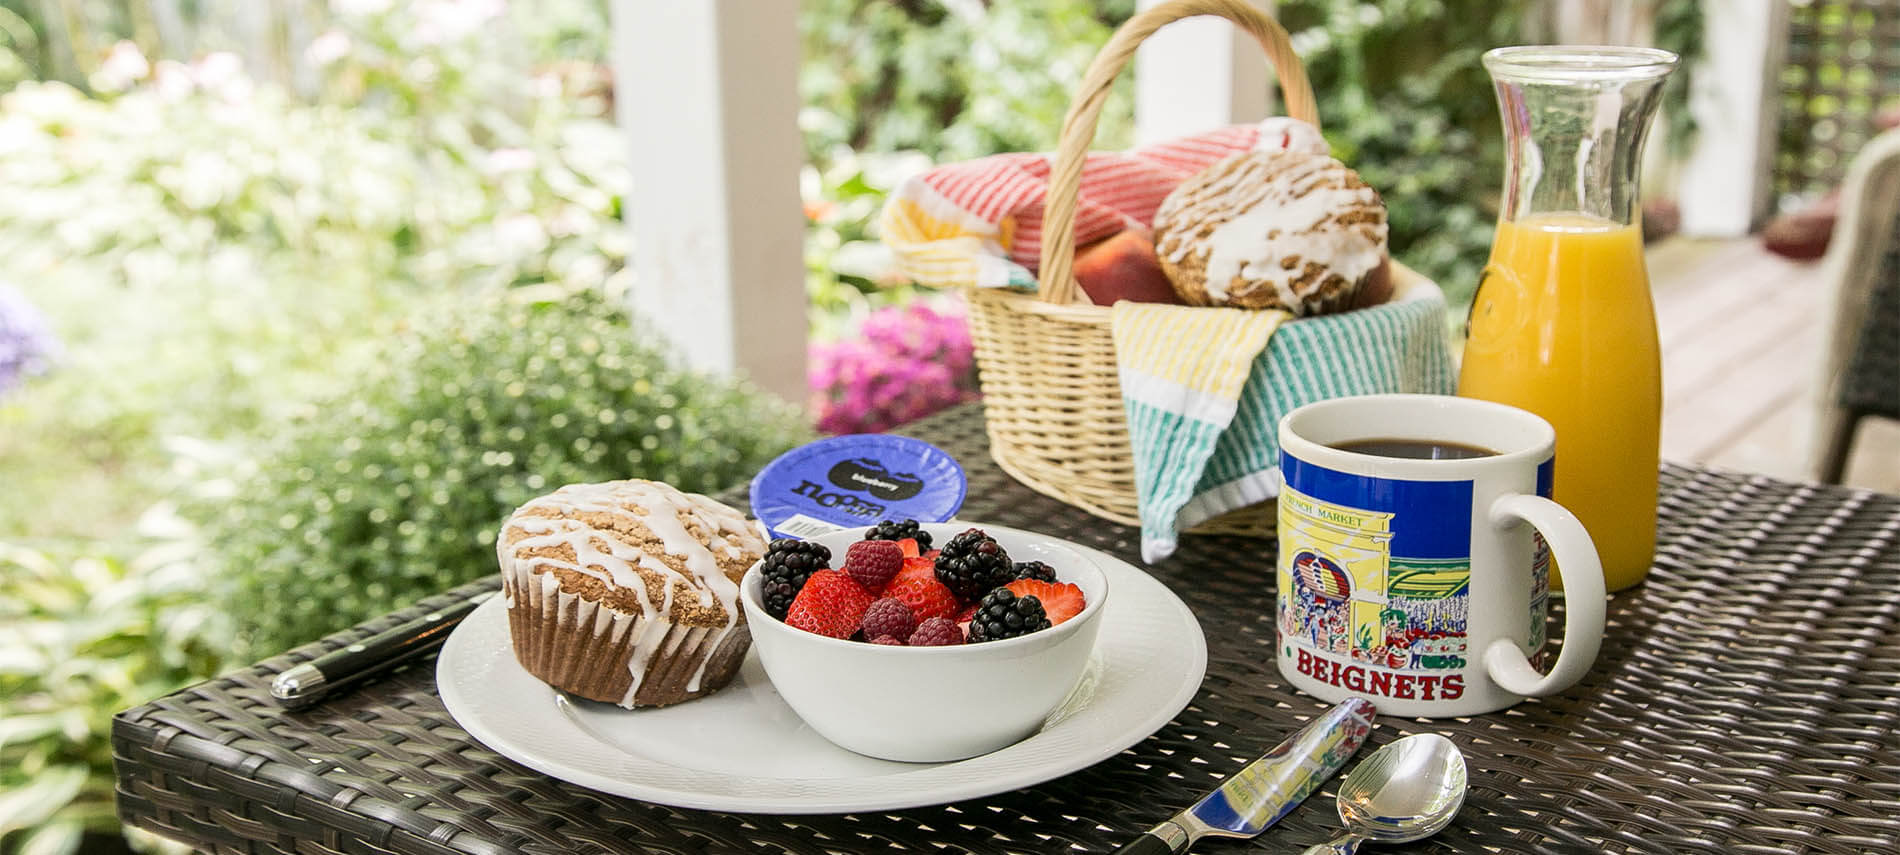 Mixed berries with muffin, coffee, orange juice and bread basket.